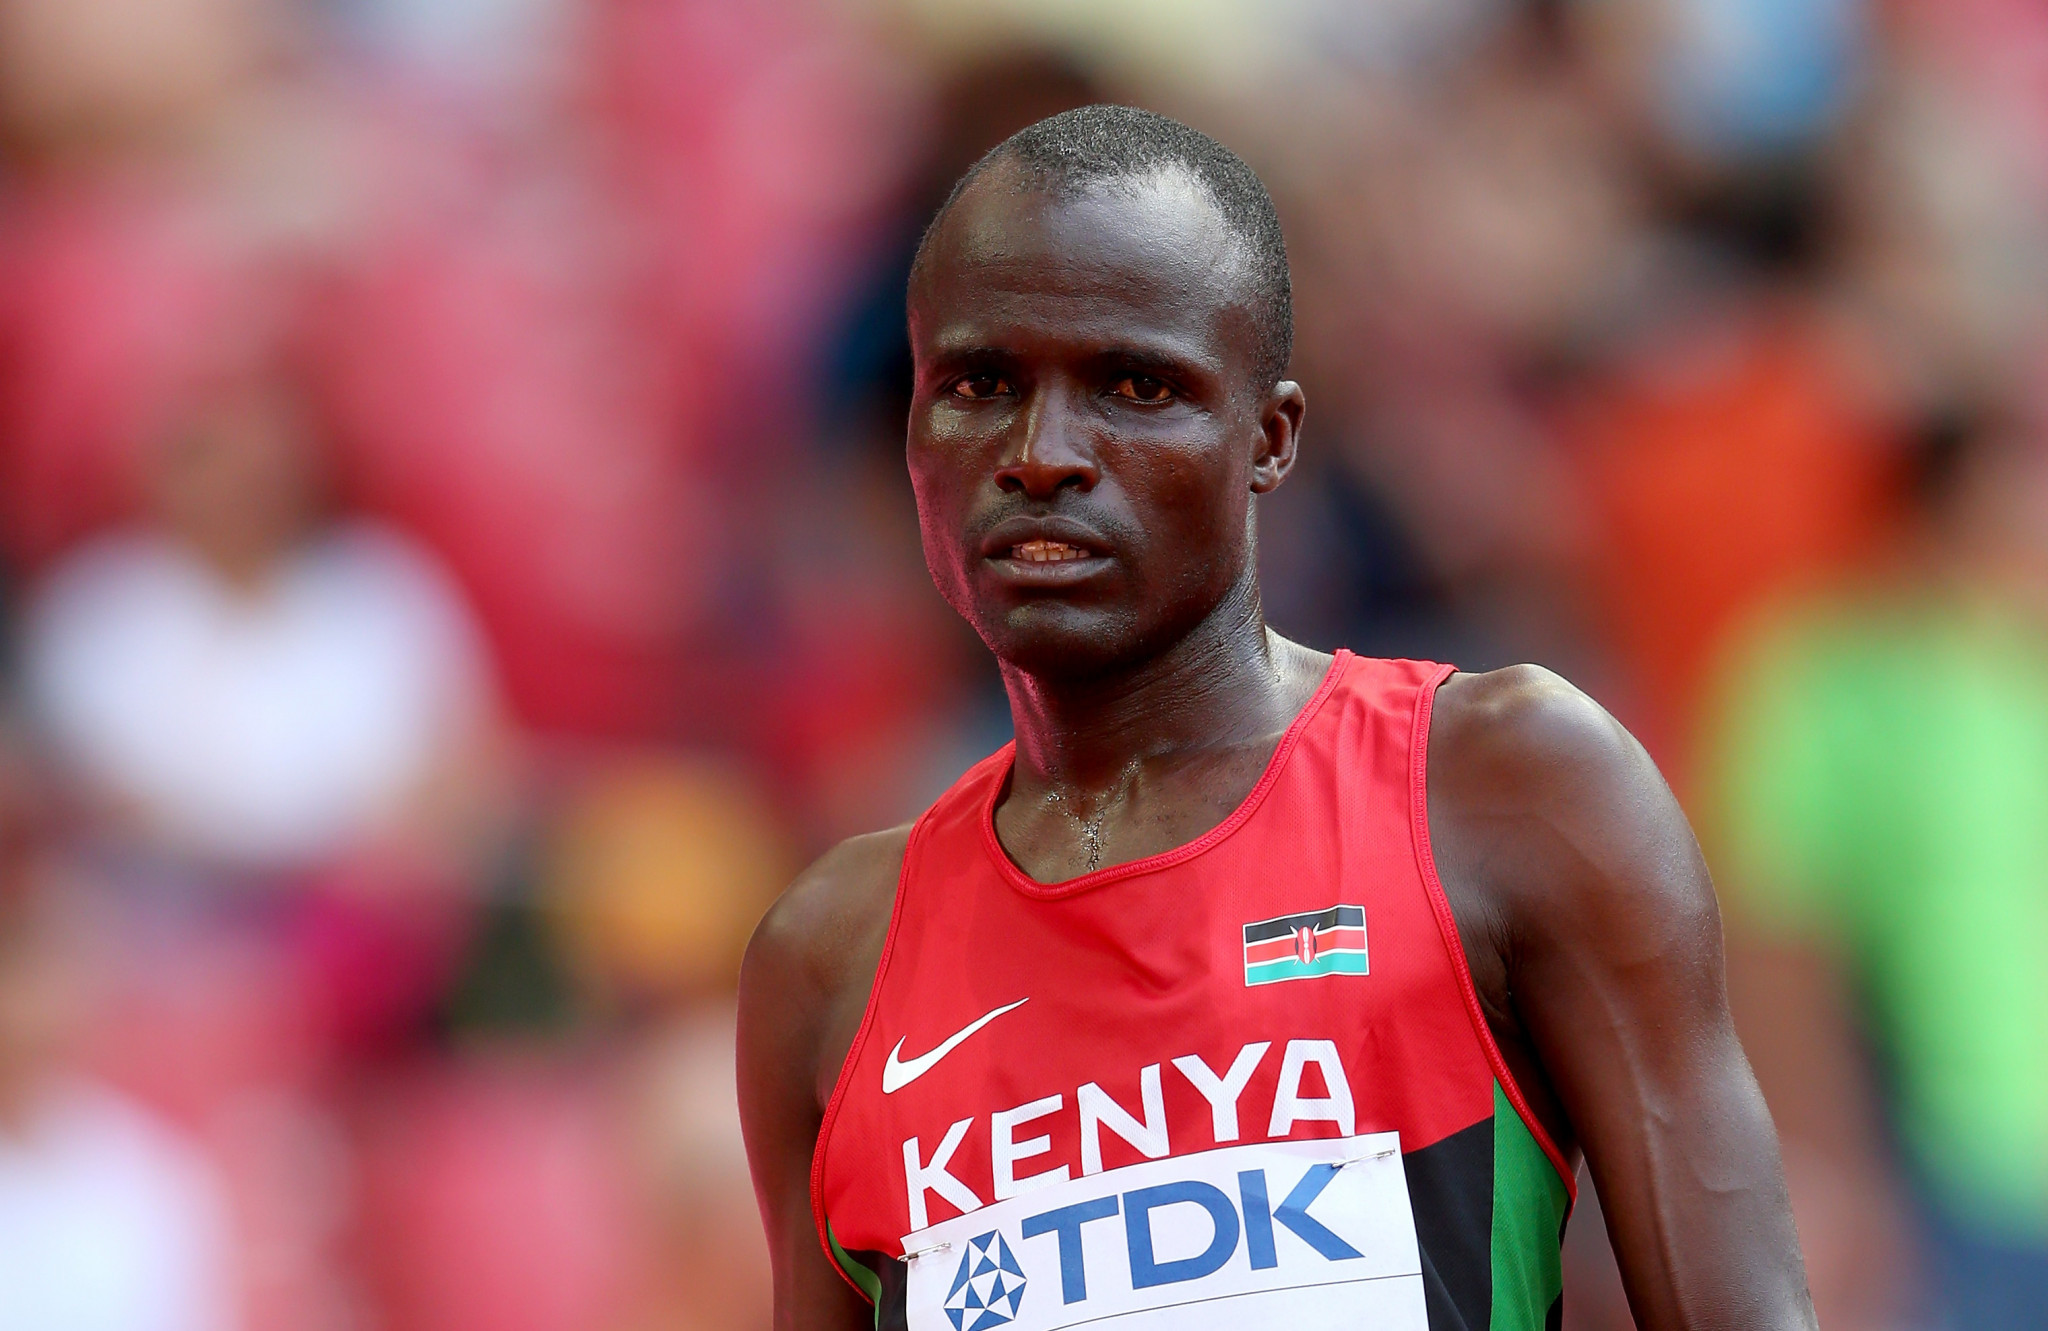 Former world champion Kamathi wants change after Kenya flop again in 10,000m at African Games